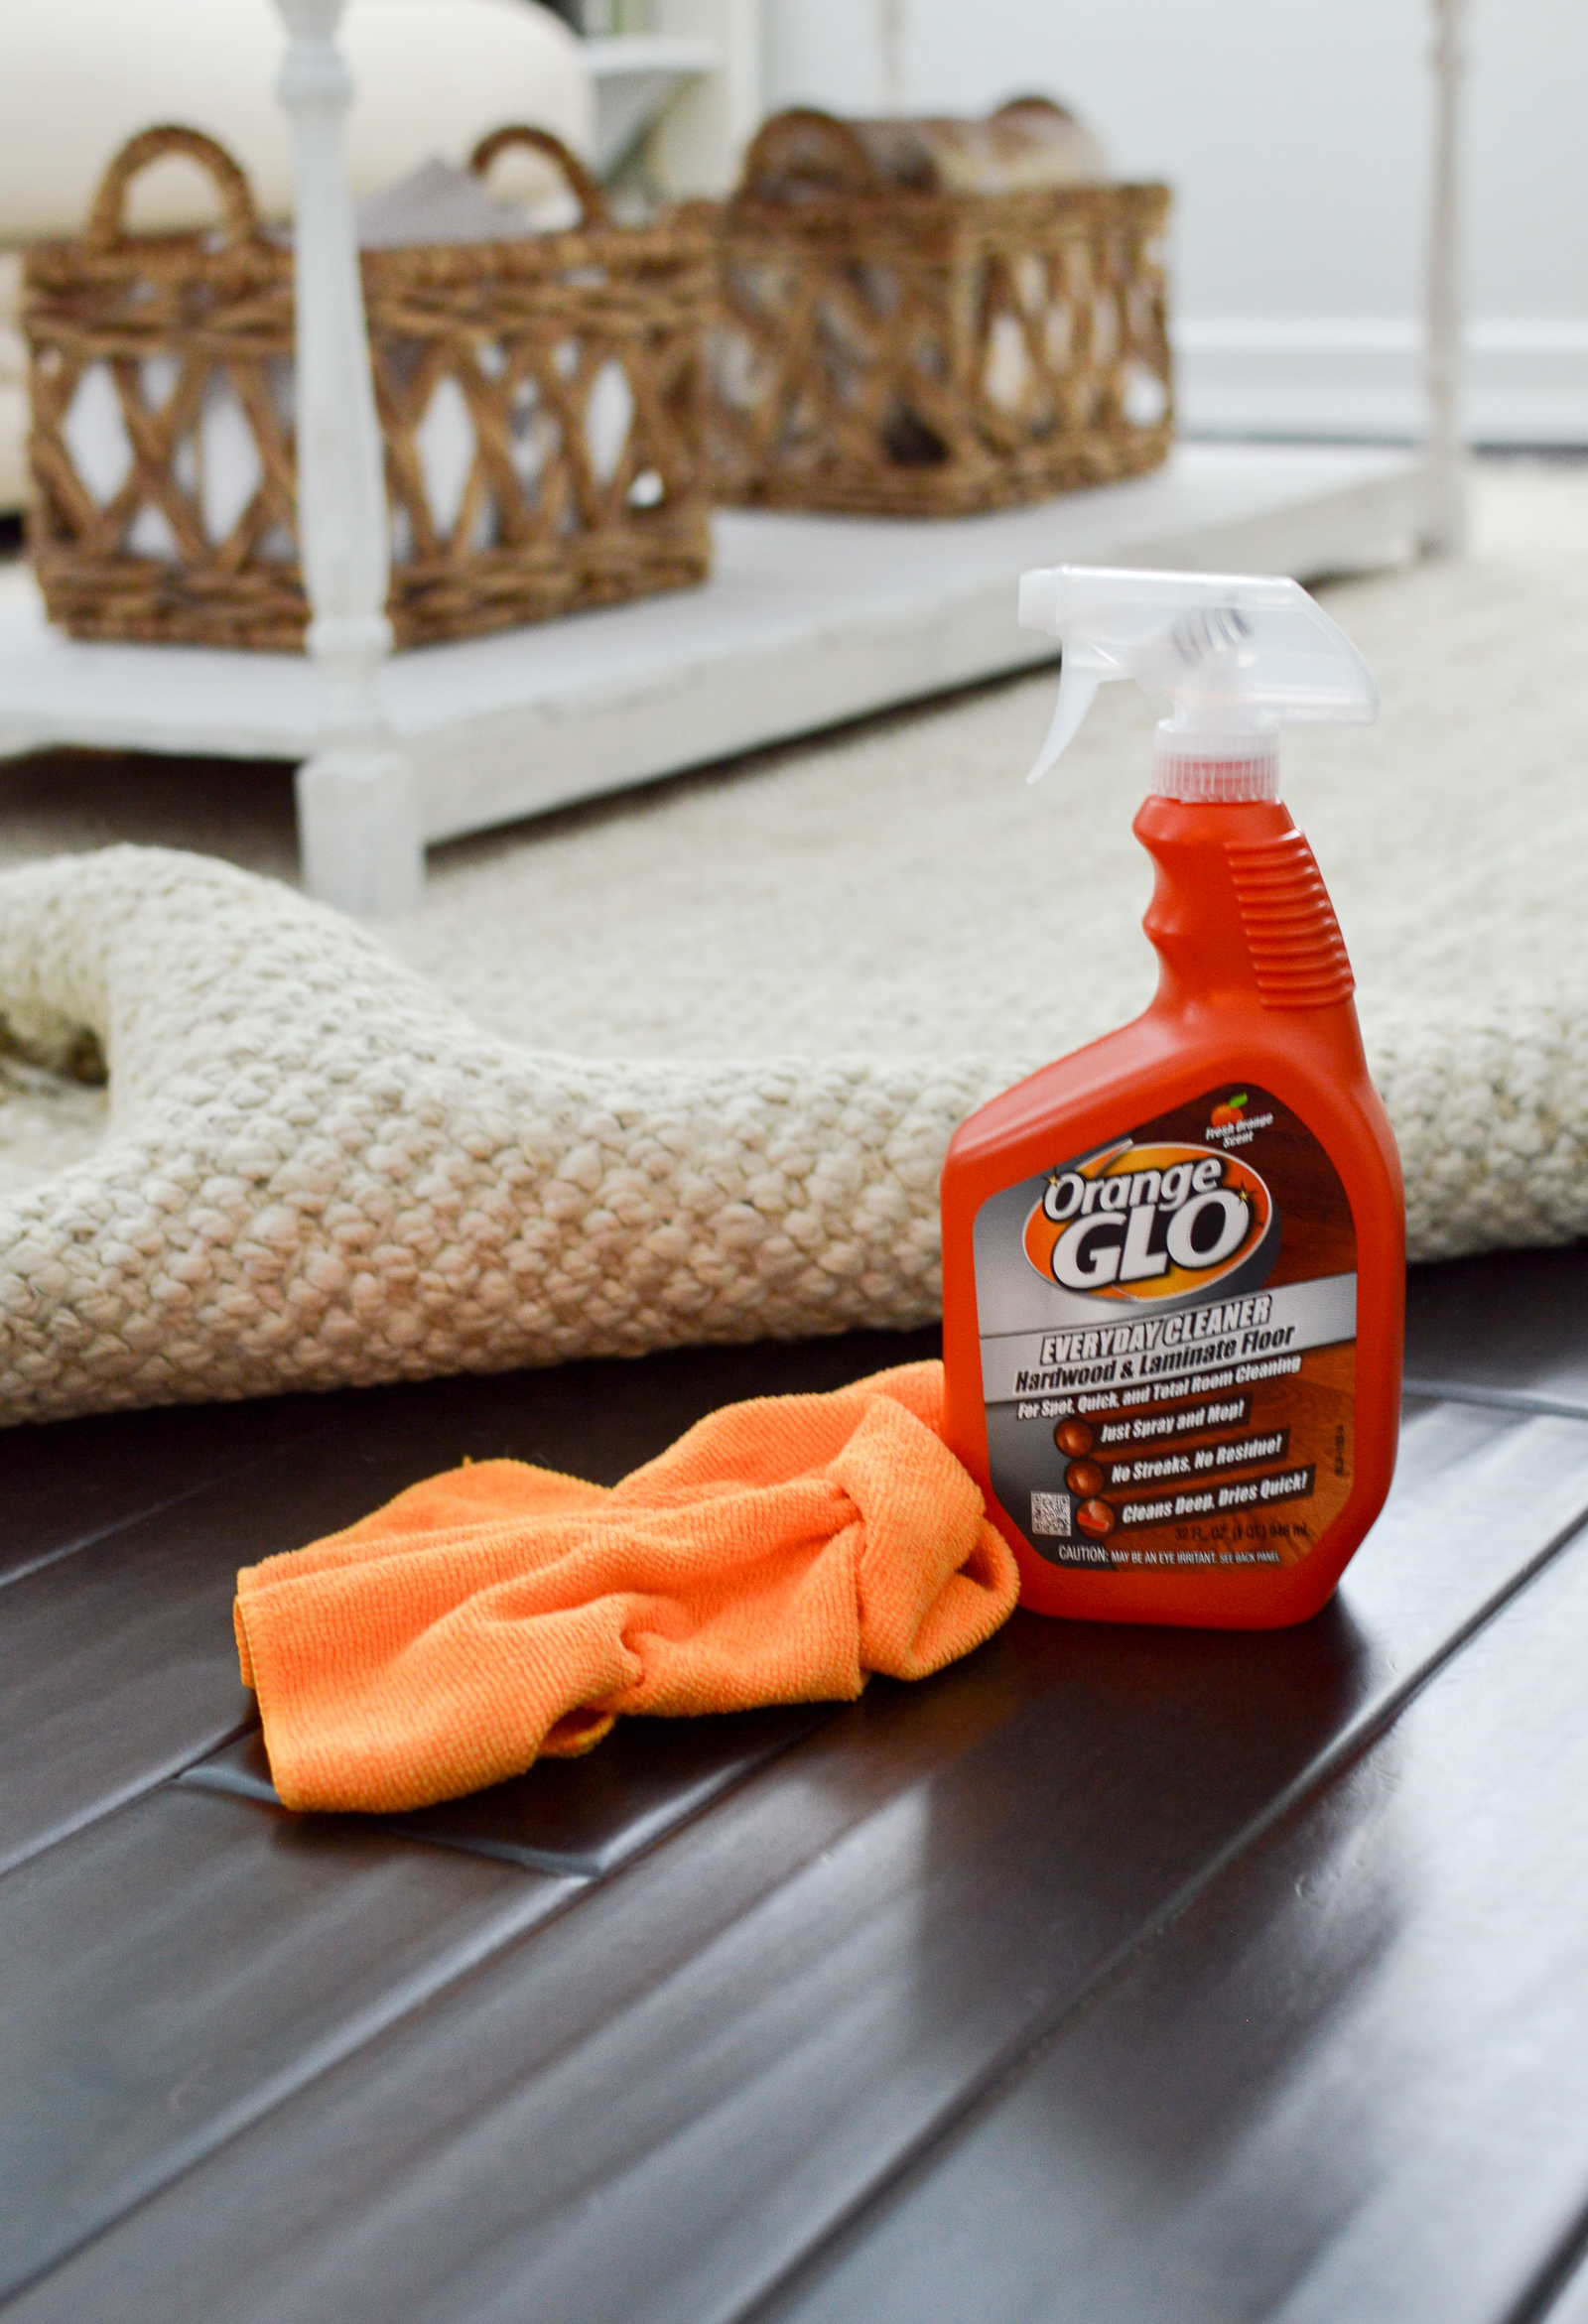 Everything You Want To Know About Our Wood Floors - How I'm using Orange Glo to clean my hardwood floors #ad